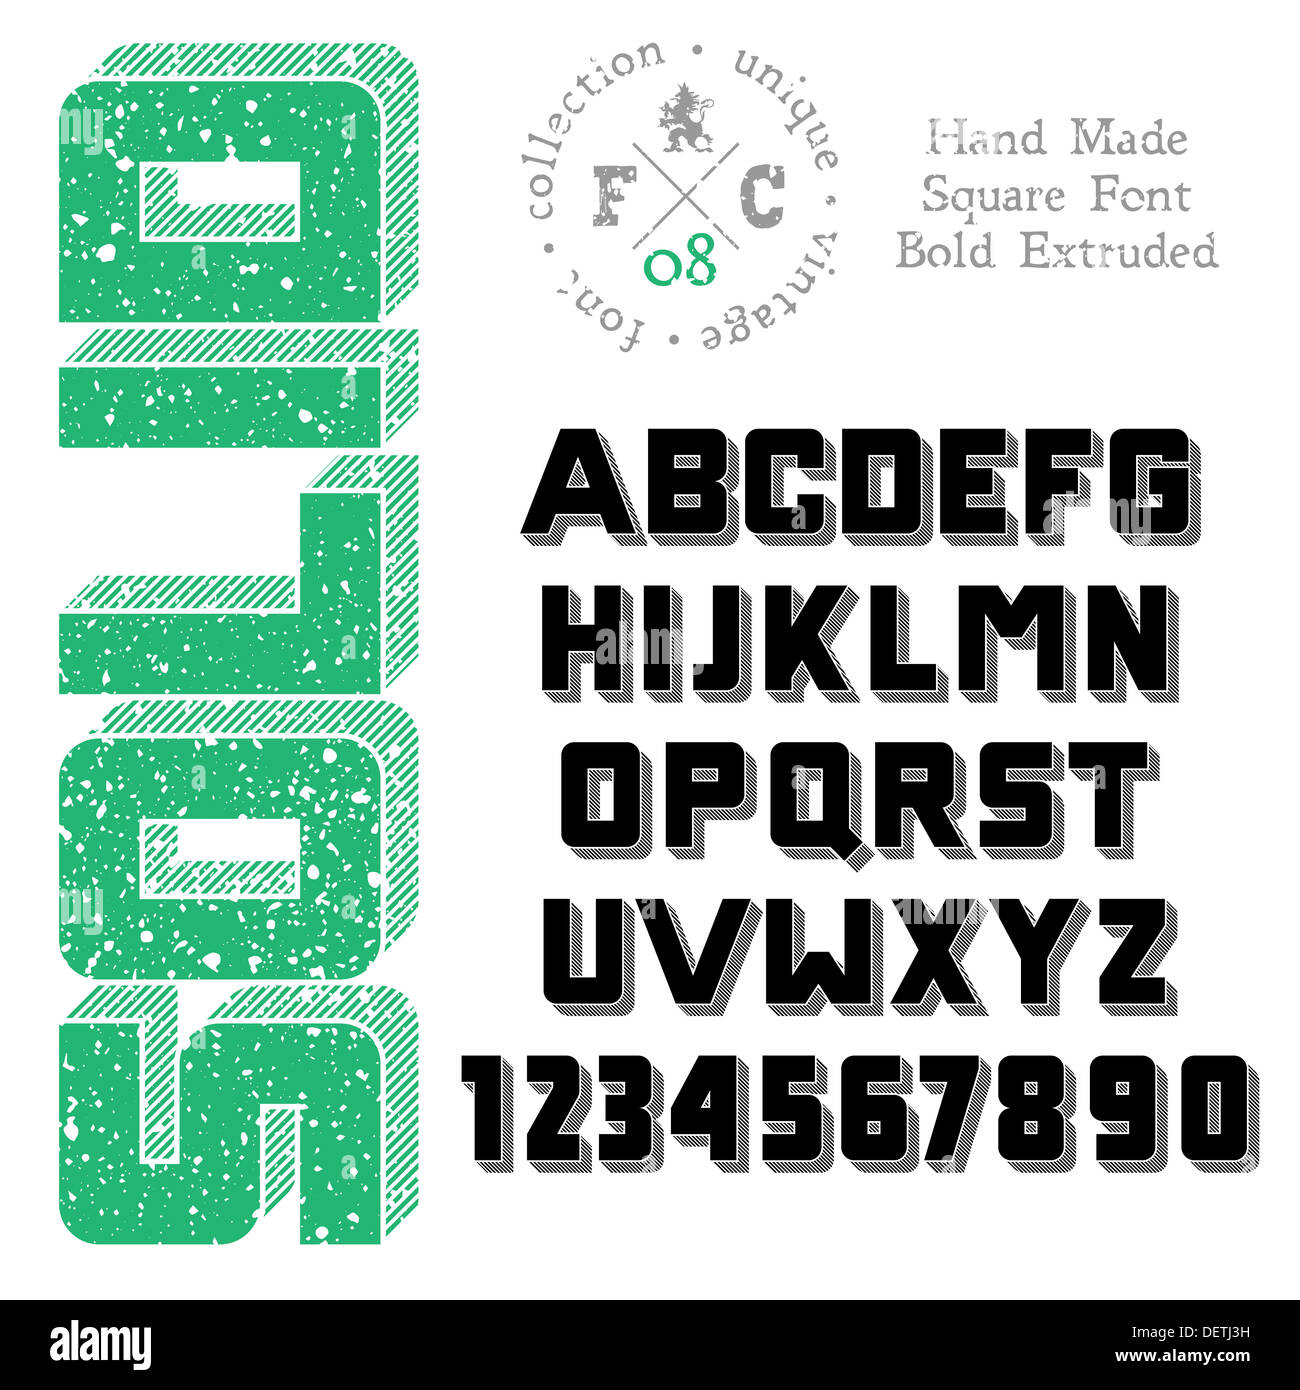 Handmade Sans Serif Font Bold 3d Extruded Stock Photos